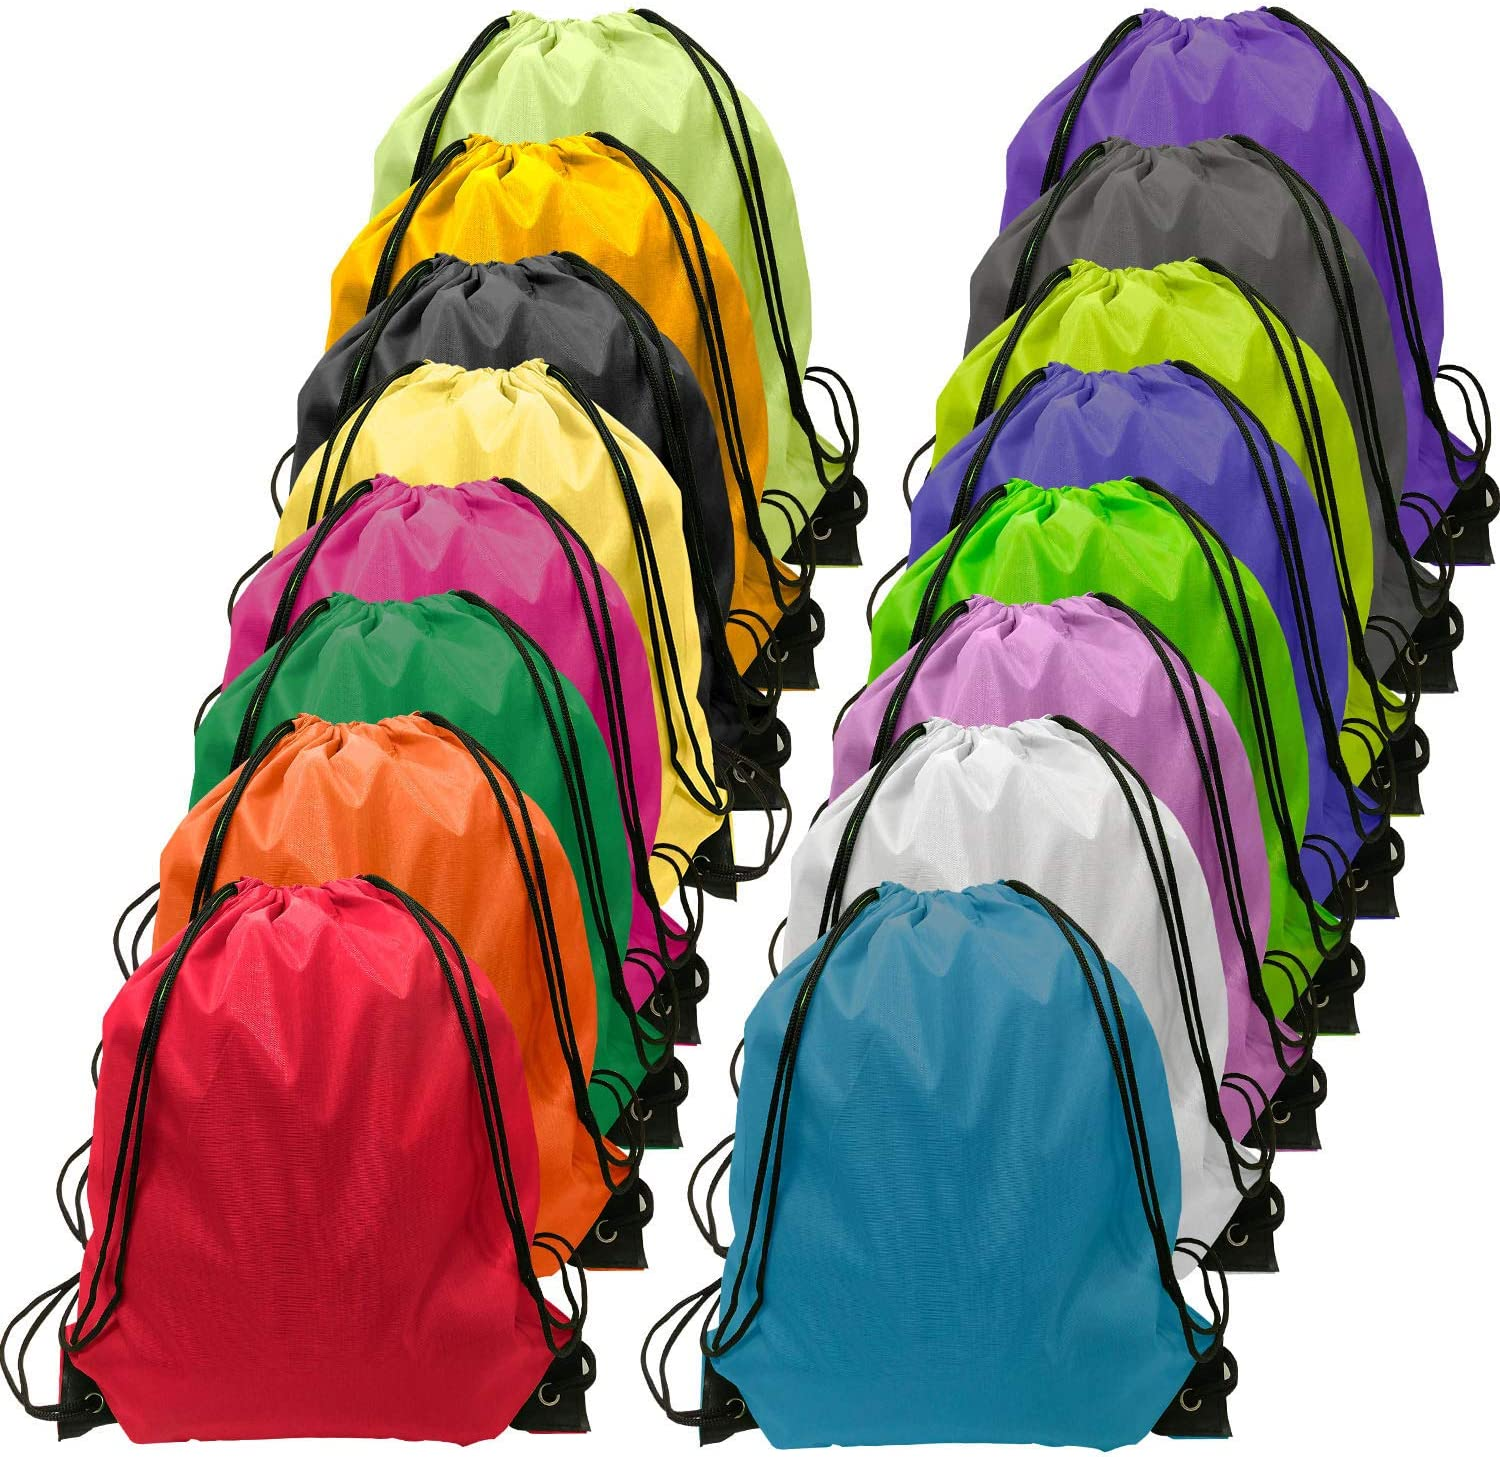 Drawstring-Backpack-Bulk-Large Drawsting Bag Kids Drawstring Backpack String Bag 16 Colors